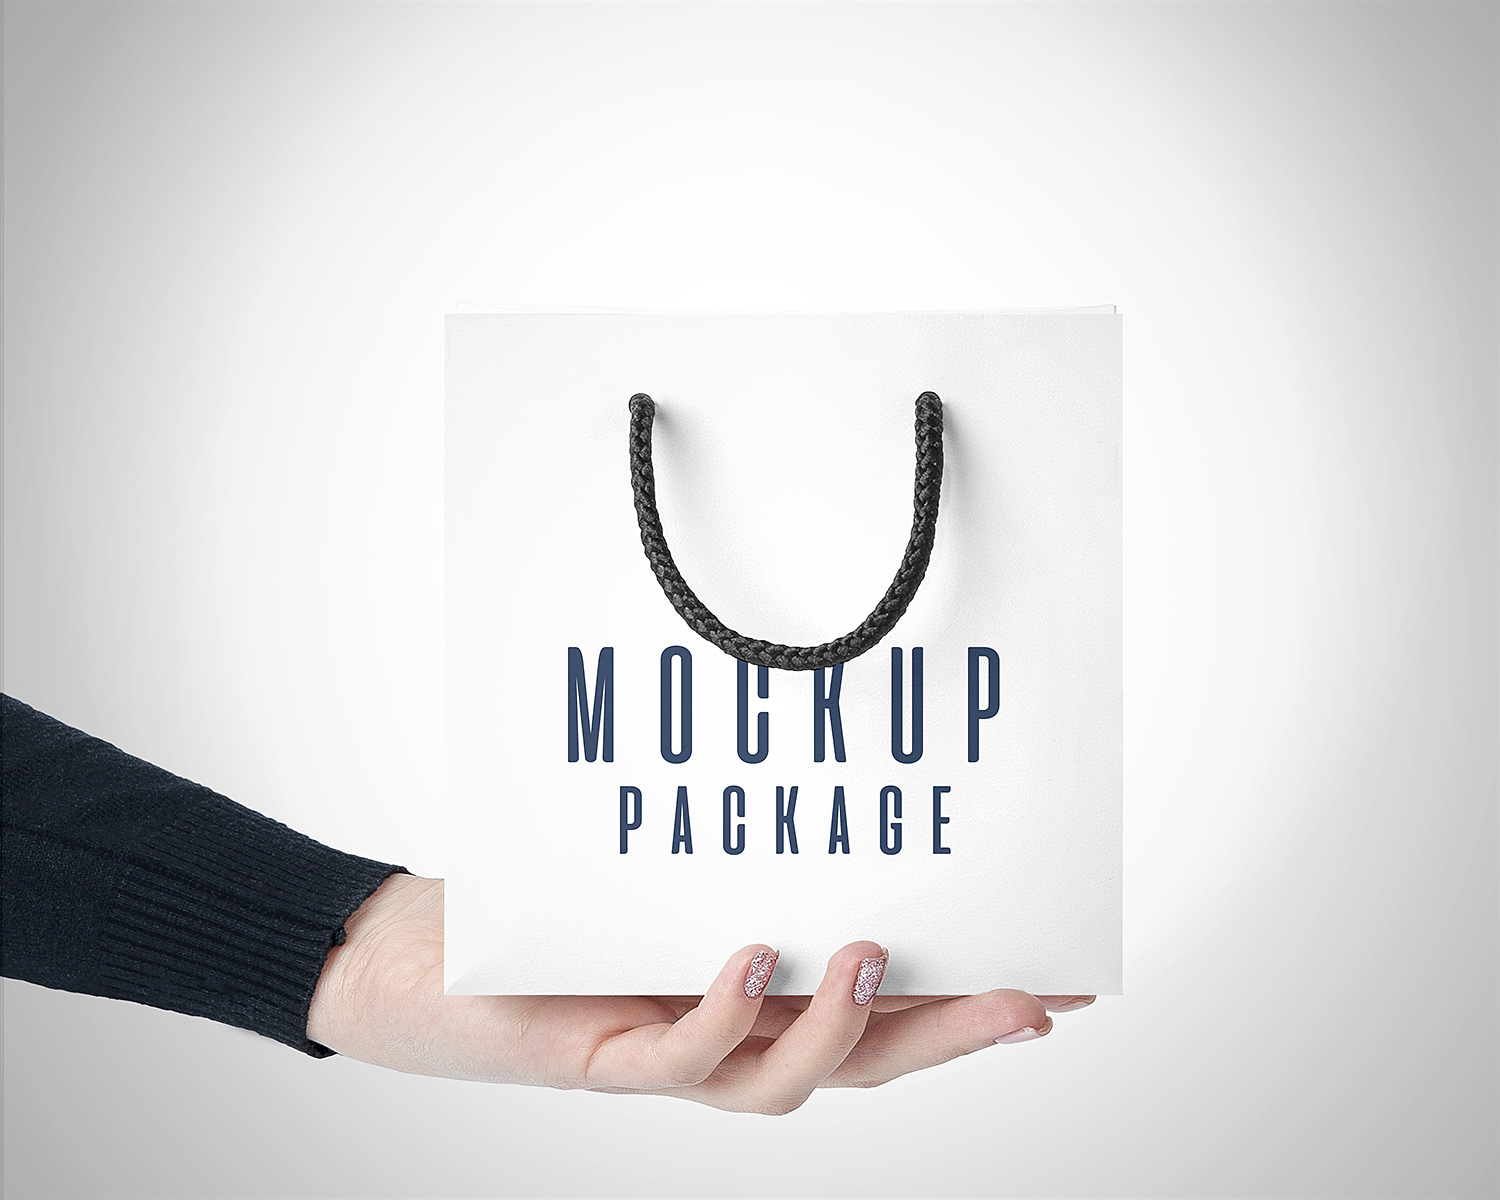 Gift-Bags-in-Hands-Free-Mockup-03